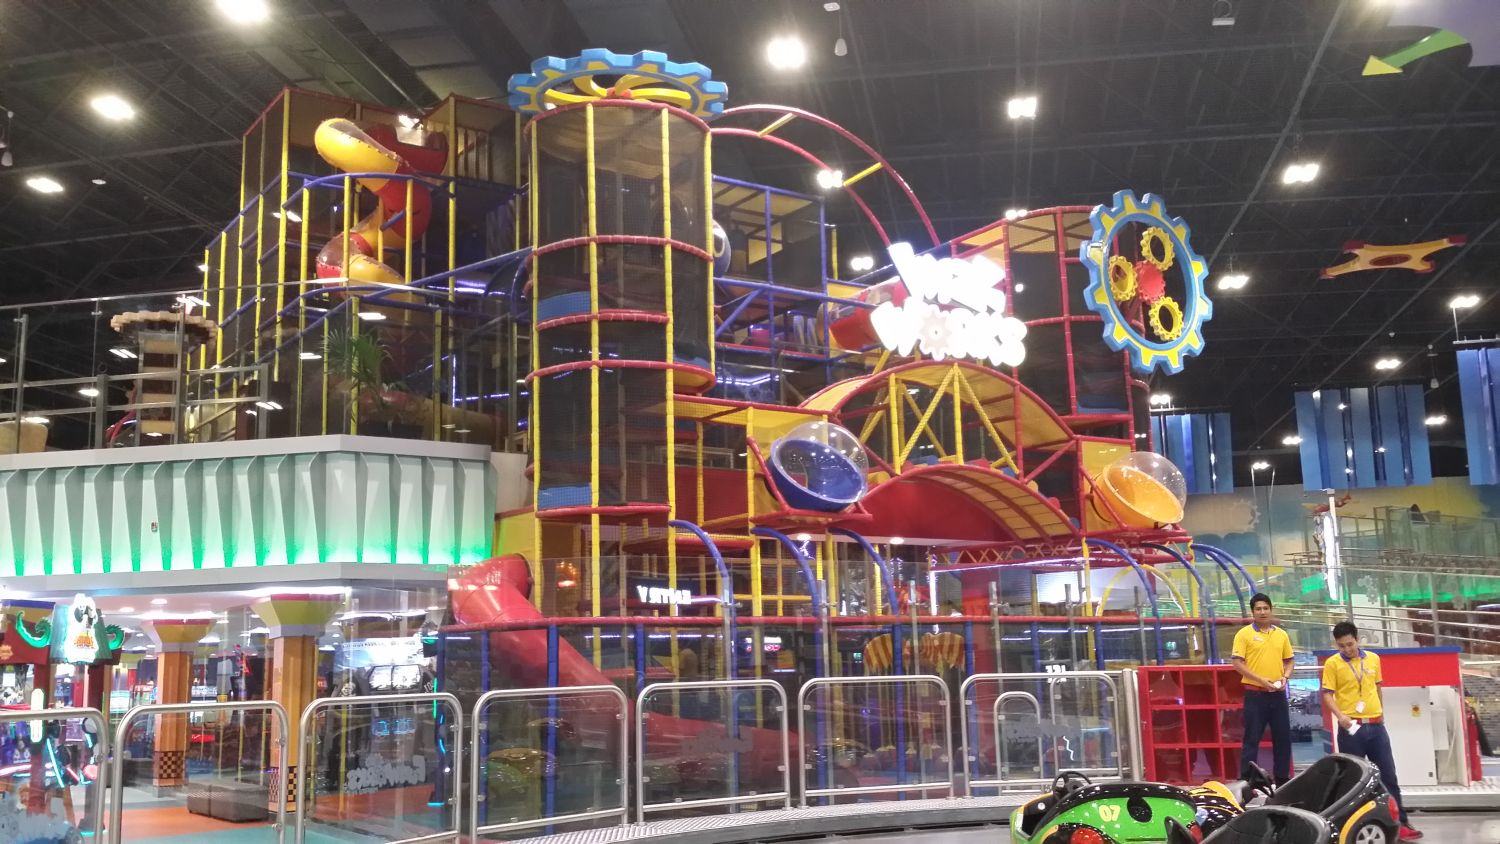 fun-works-playground-in-yas-mall-uae.jpg